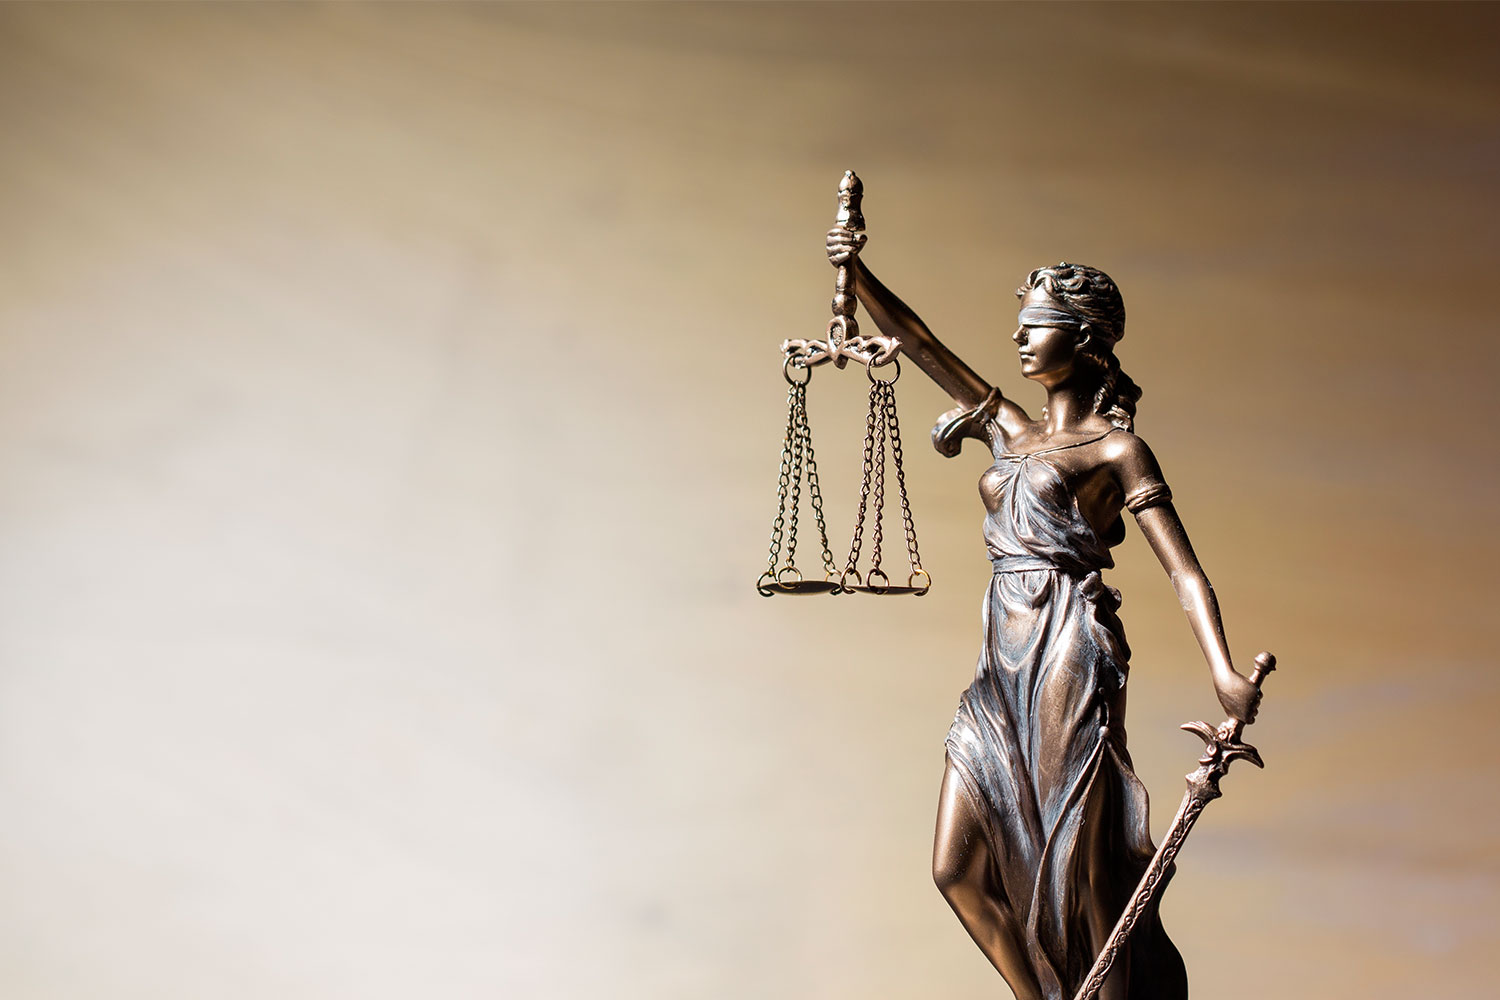 statue of lady justice holding scales of justice and sword against brown background